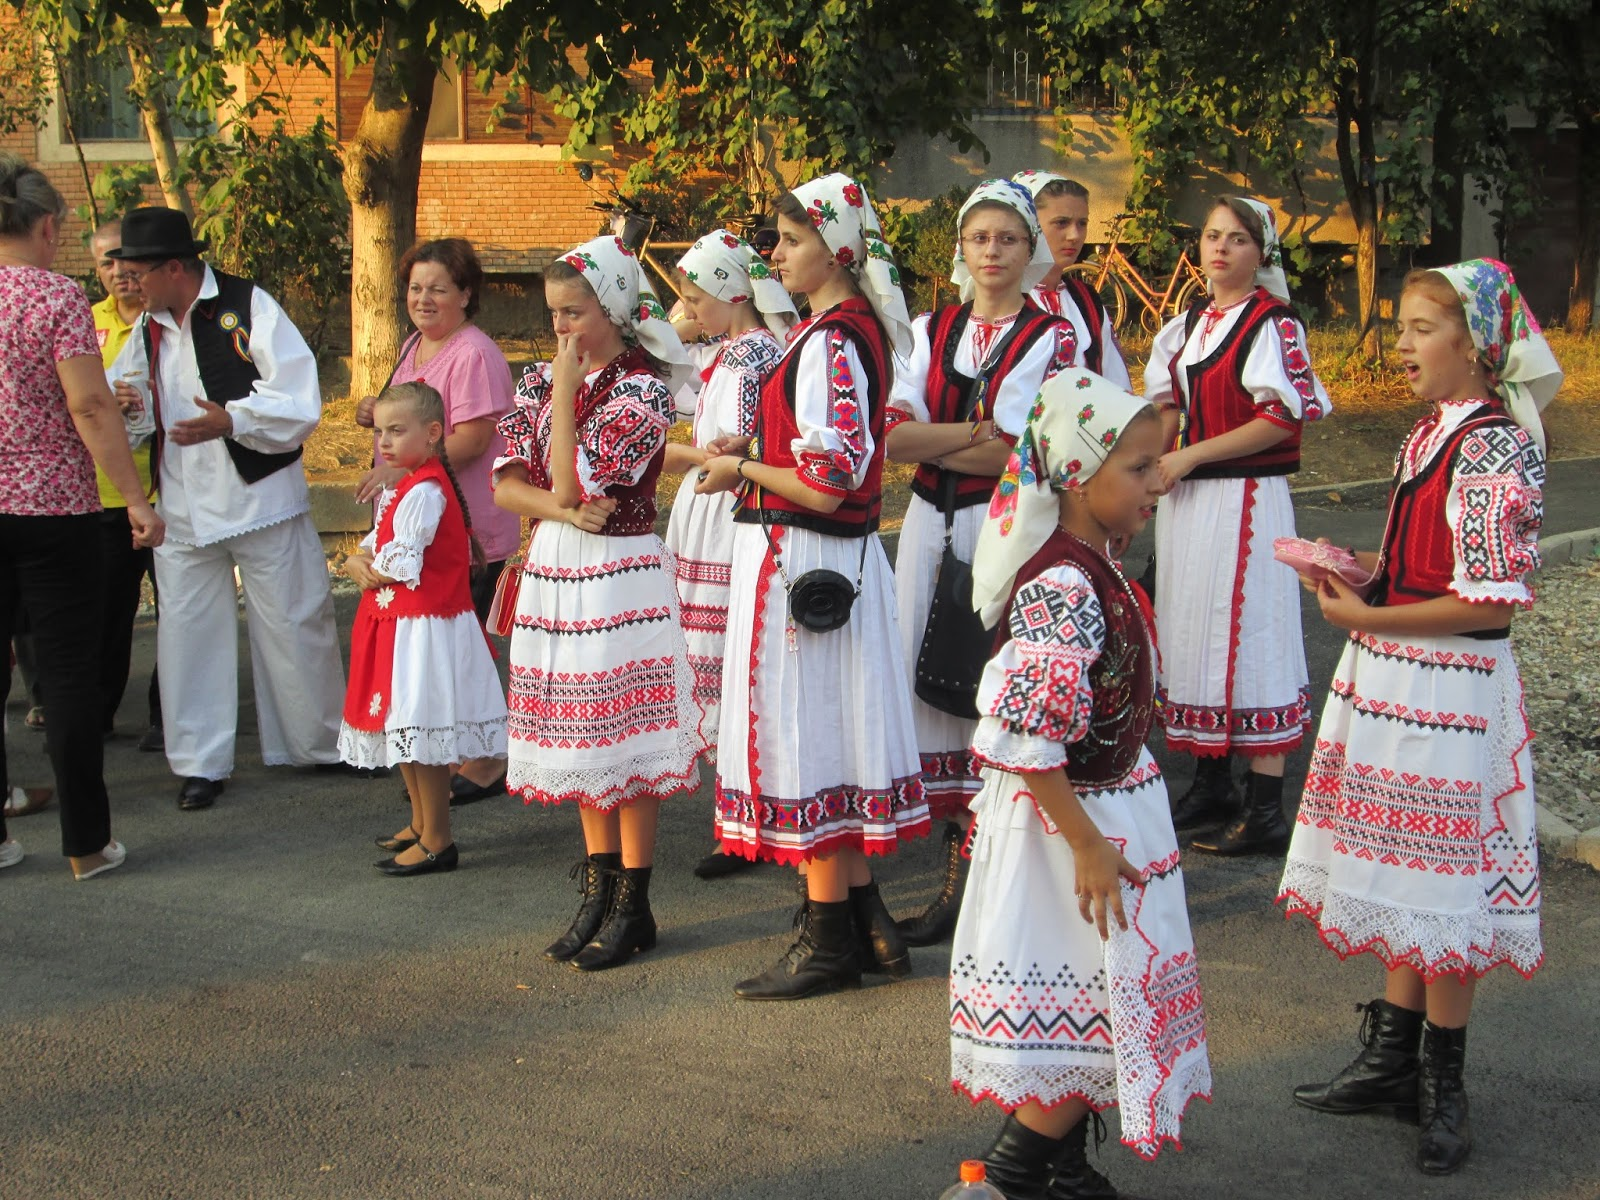 Irenes Romania: A taste of Romanian culture